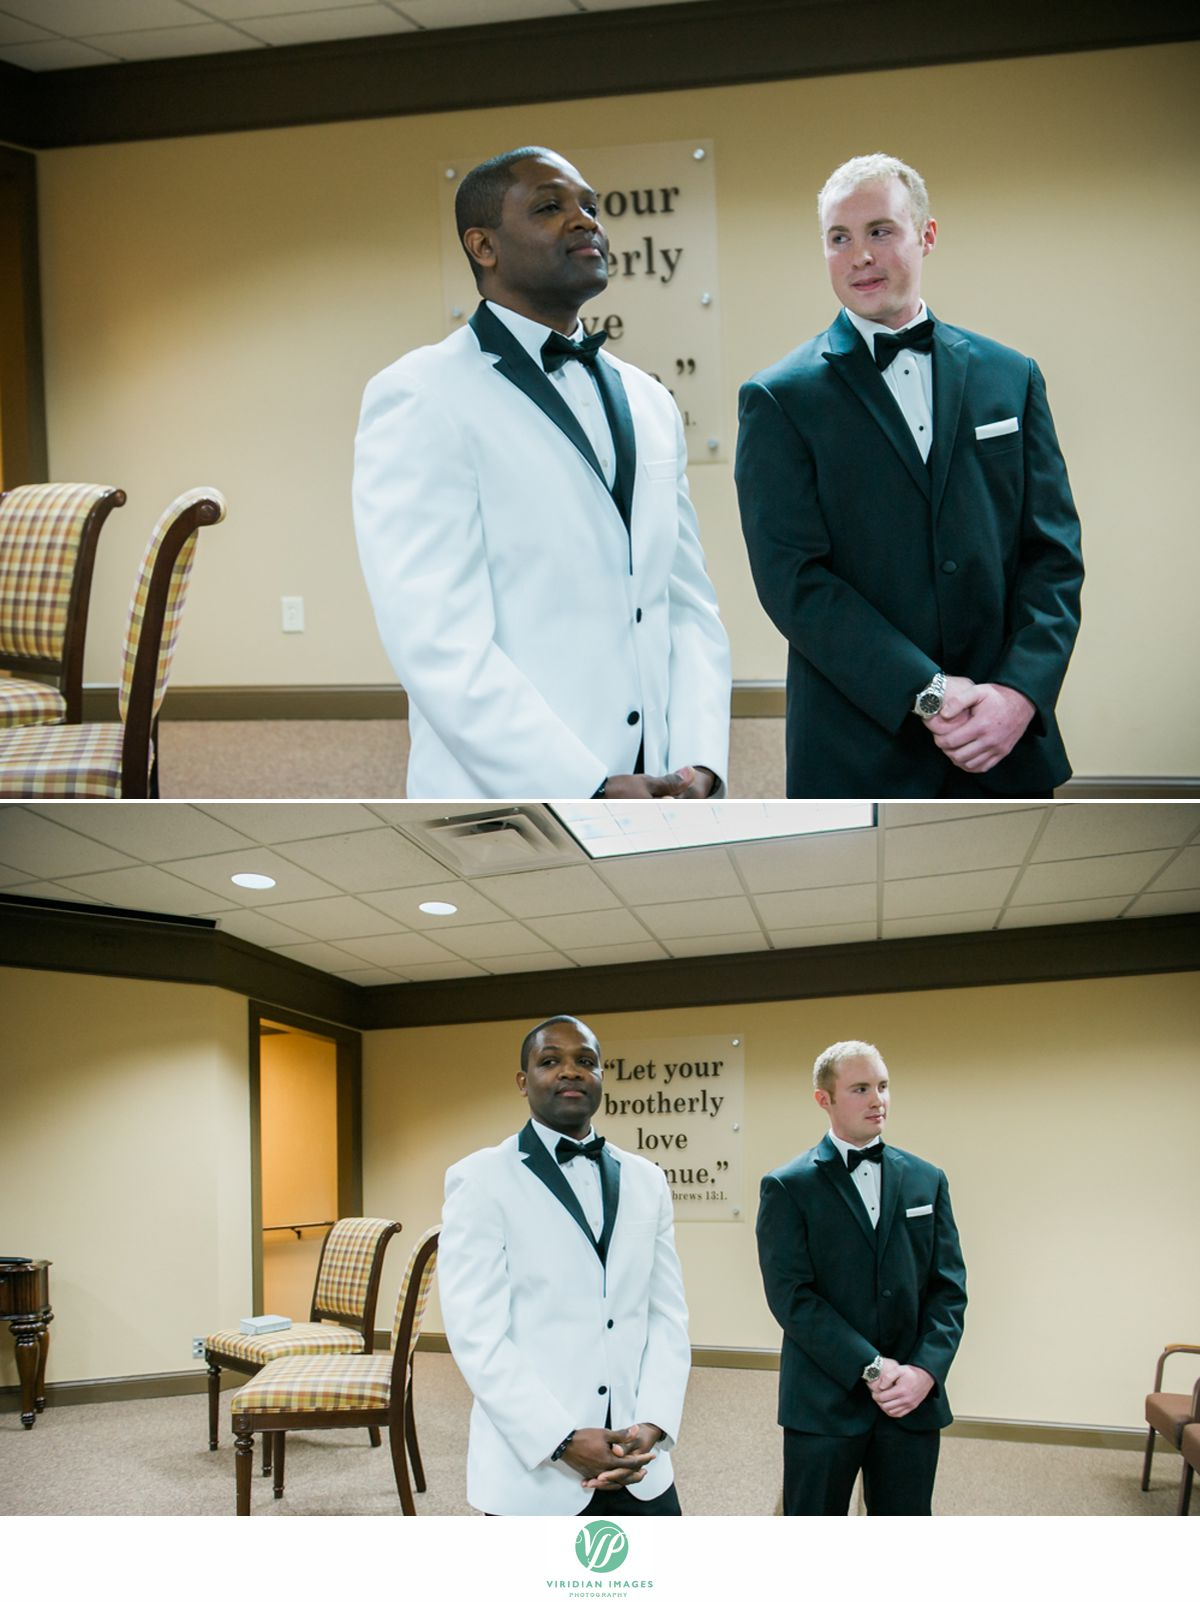 Country Club of the South Wedding Jeff and Annette Viridian Images Photography photo 10